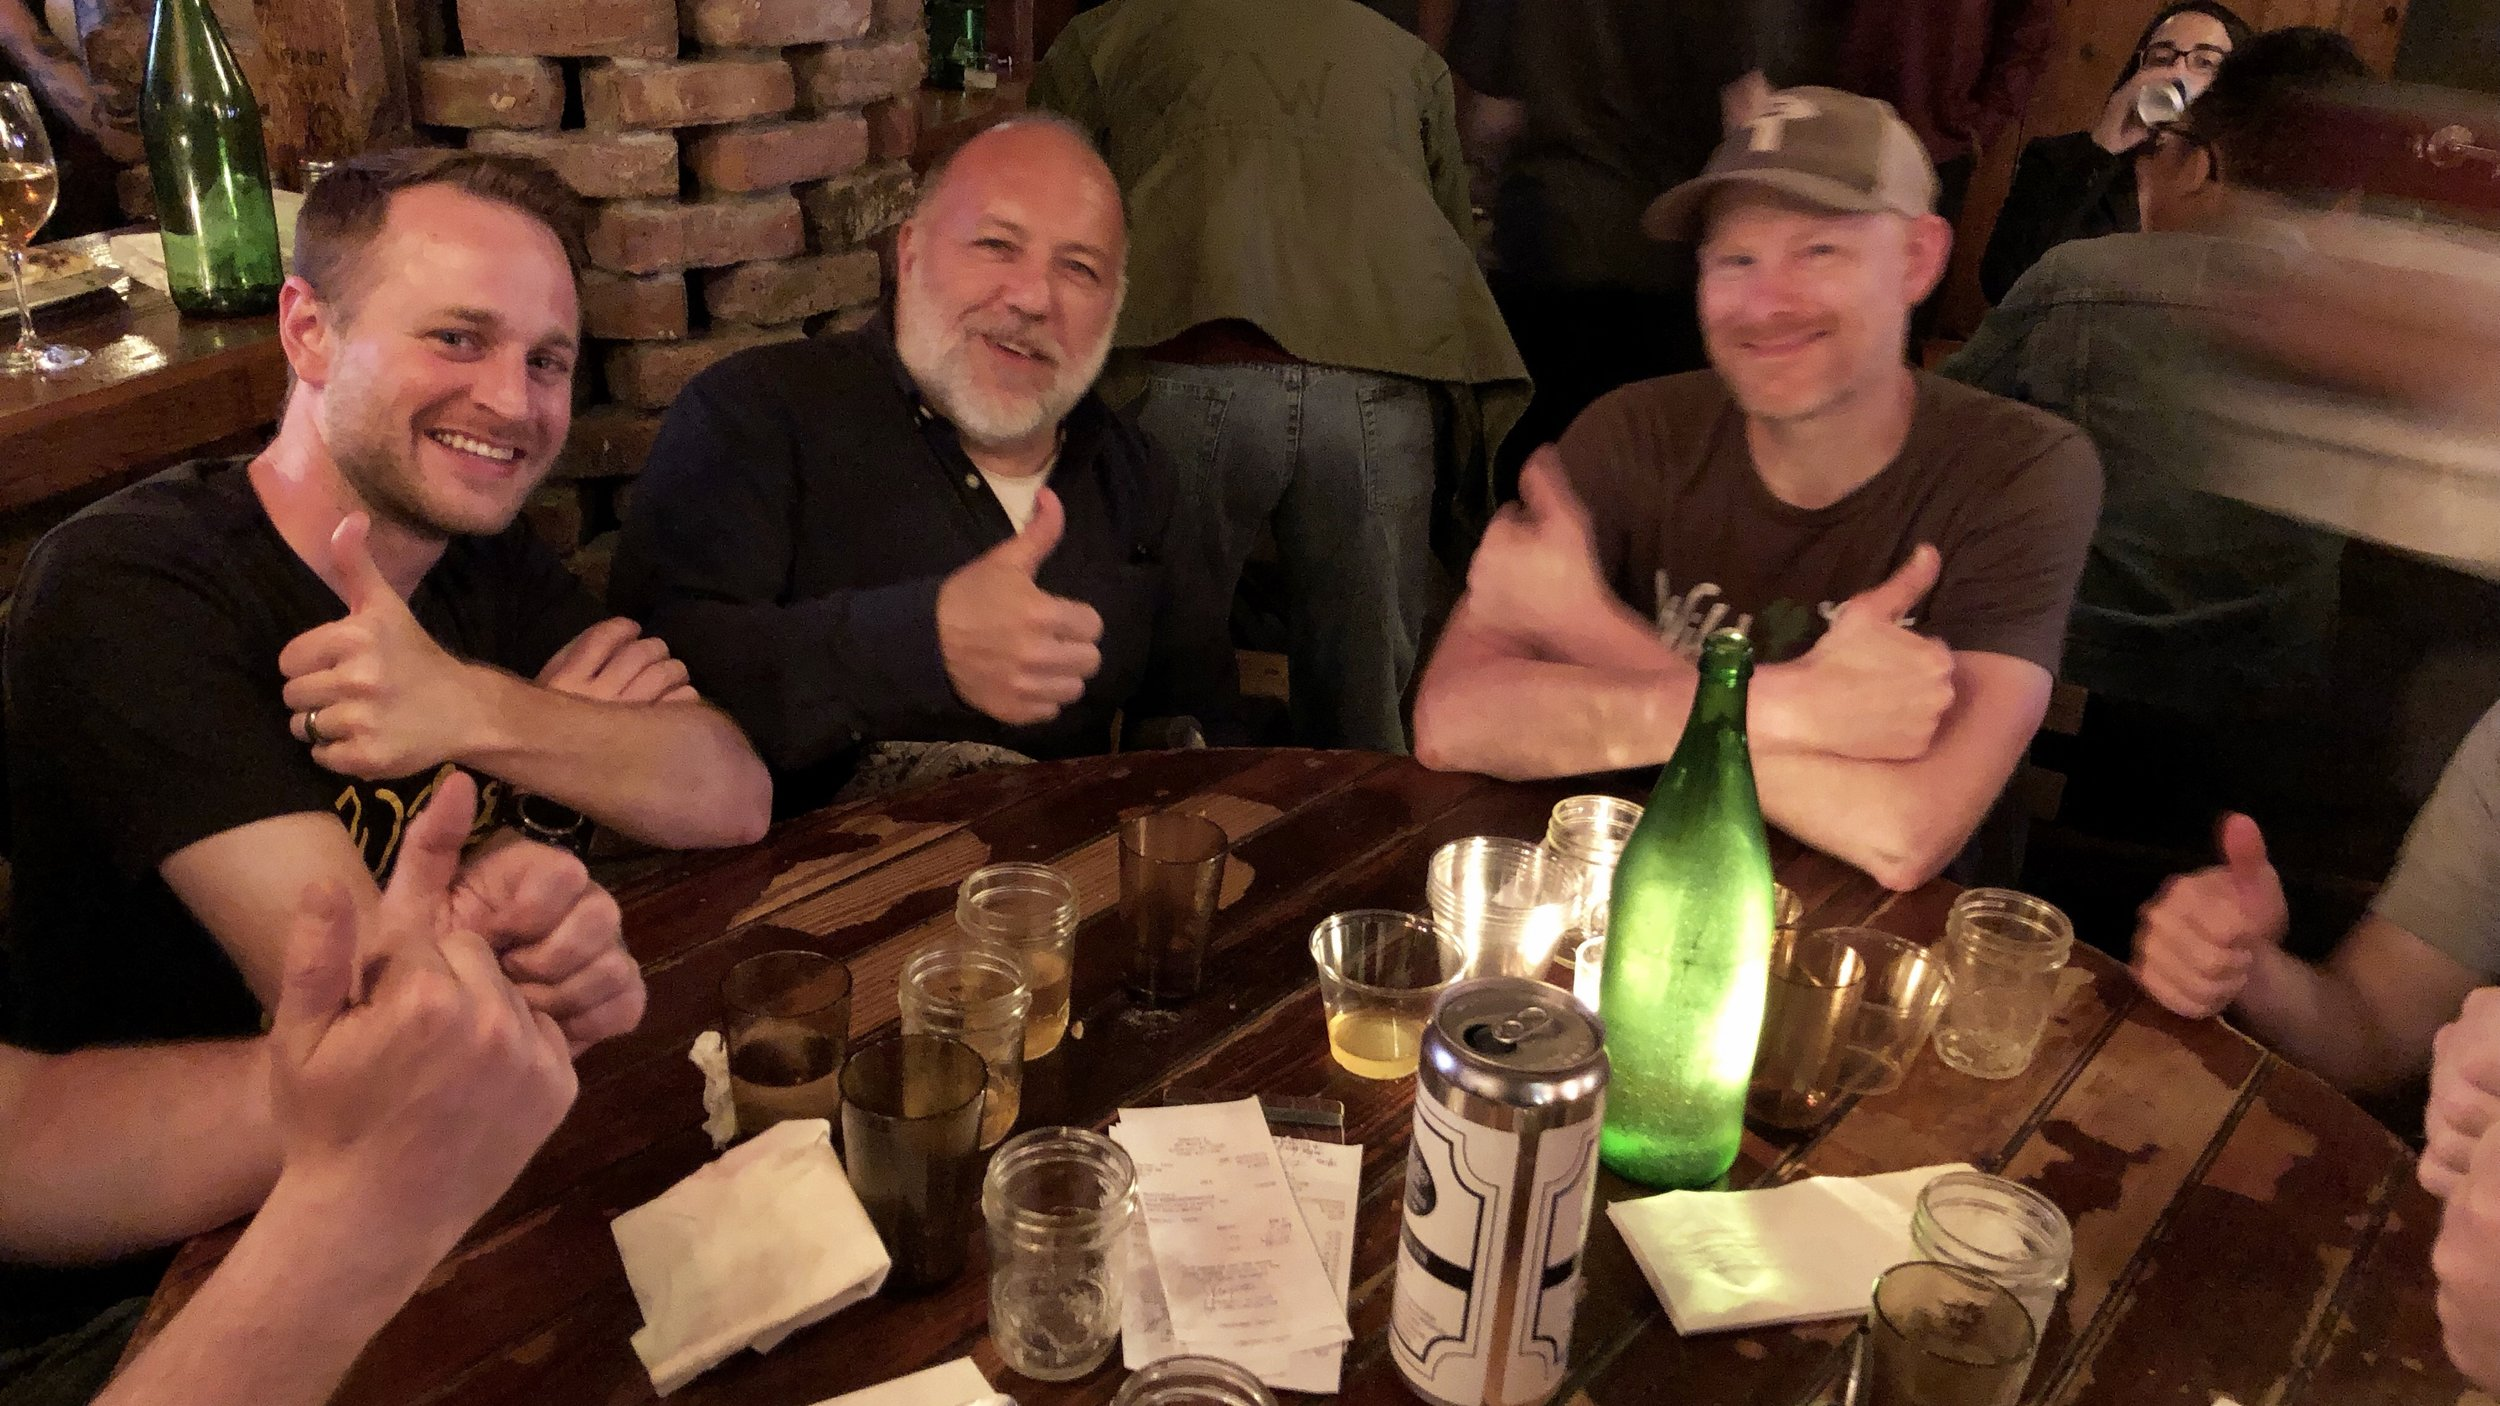 A fave stop when I hit NY is Jimmy Carbone's show Beer Sessions Radio. That's him in the middle flanked by Steven Hallstone (left) and Brett Taylor, who's working at Fifth Hammer now while opening his own brewery Wild East. You can listen to podcasts   here  ; my stop will air next week.